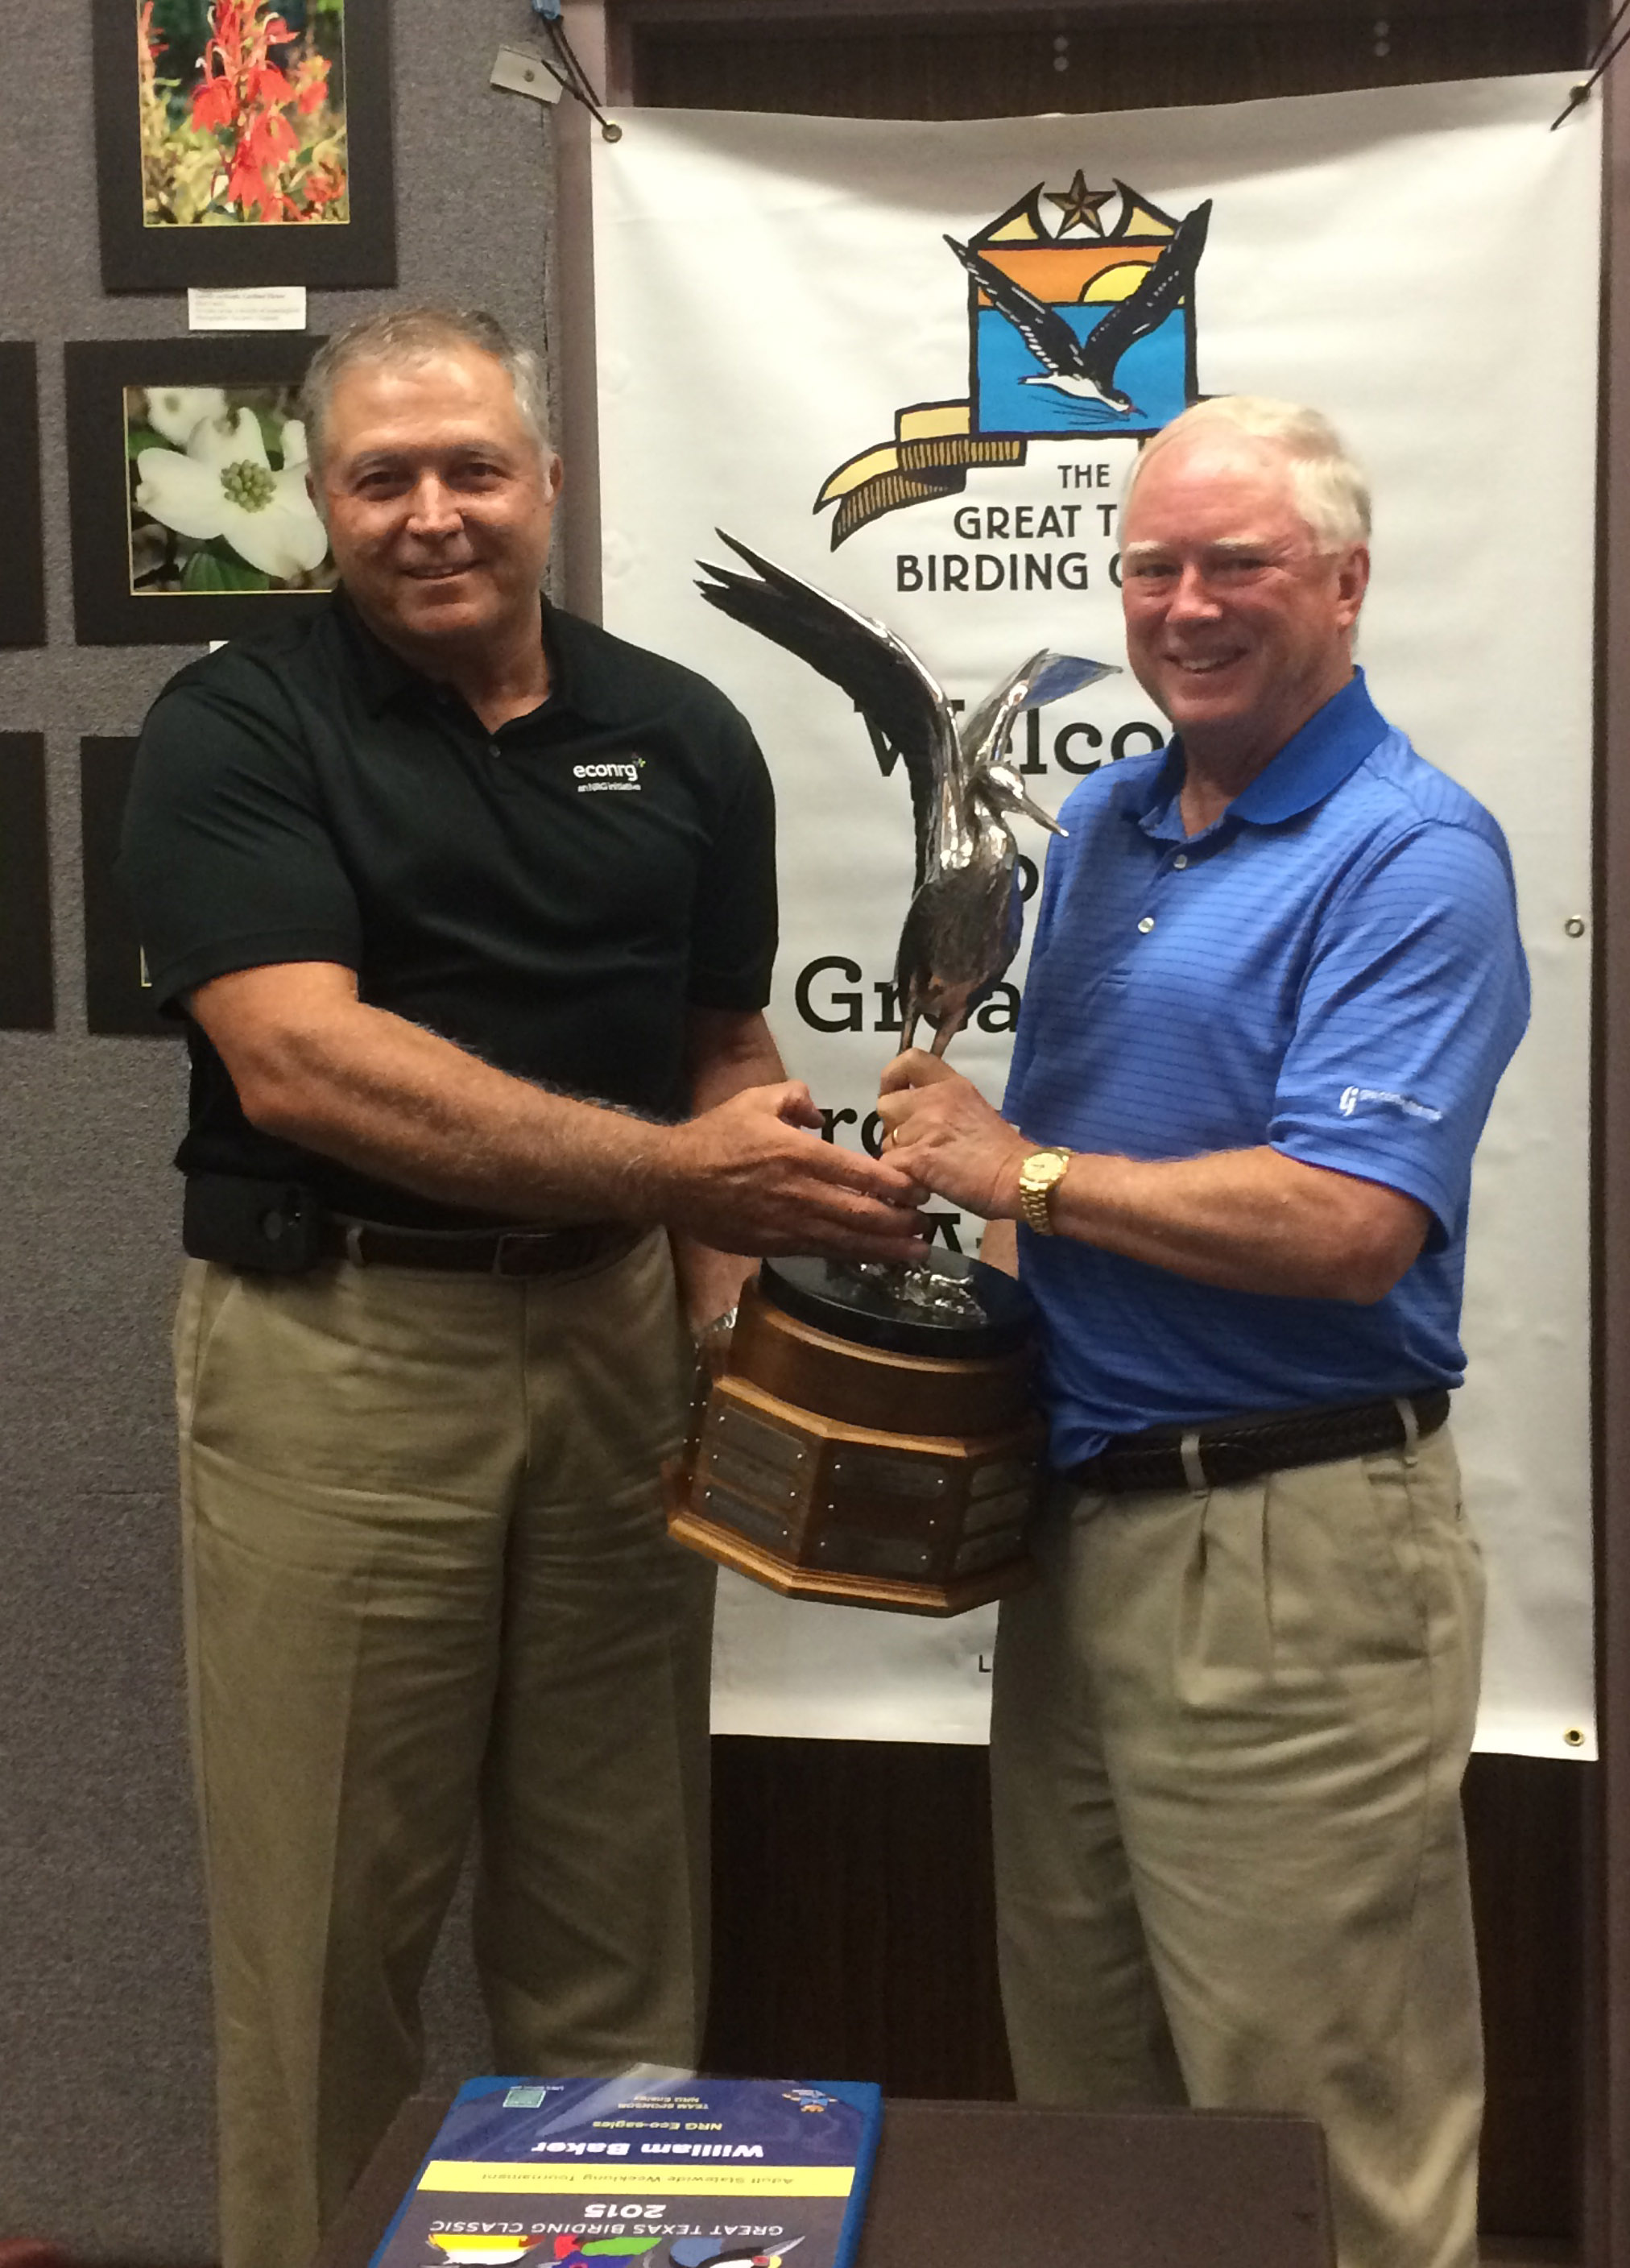 Bill Baker and Andy Dietrich, accepting the 2015 Statewide Weeklong Tournament winners trophy for the NRG Eco-eagles.